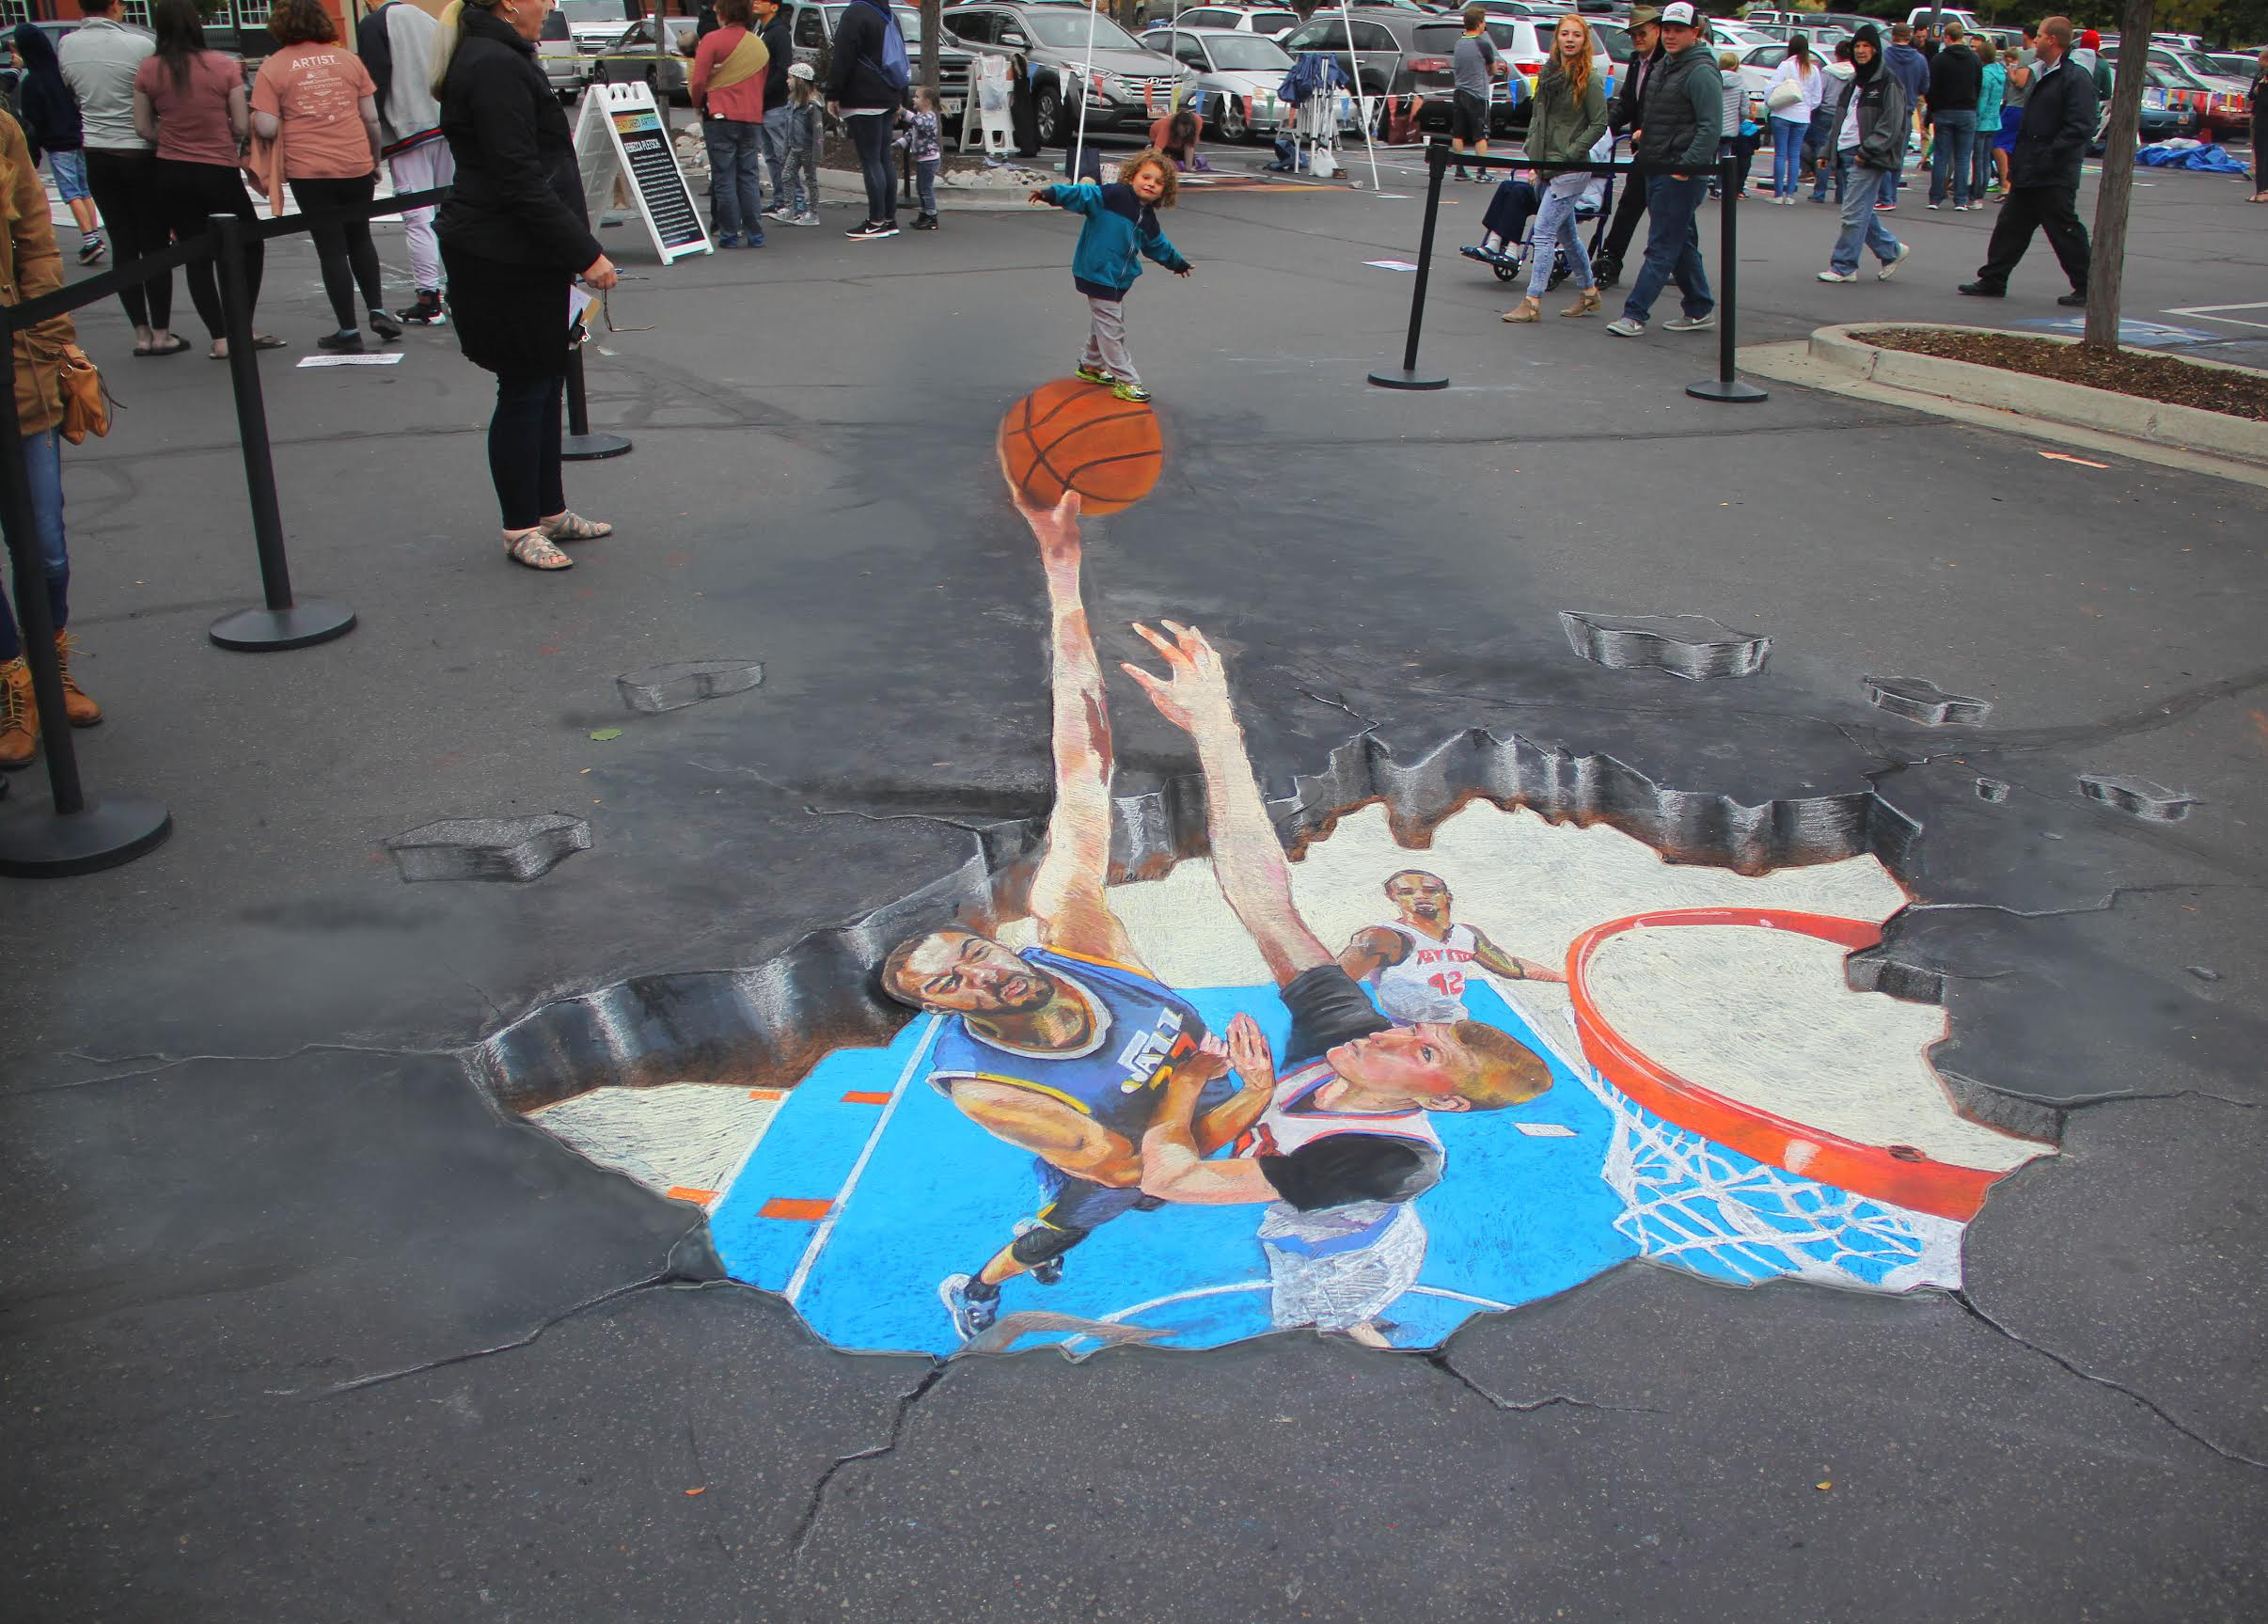 Tivoli Ny Street Painting Festival Diamond Ranch Teacher Goes For Slam Dunk Inspires Student